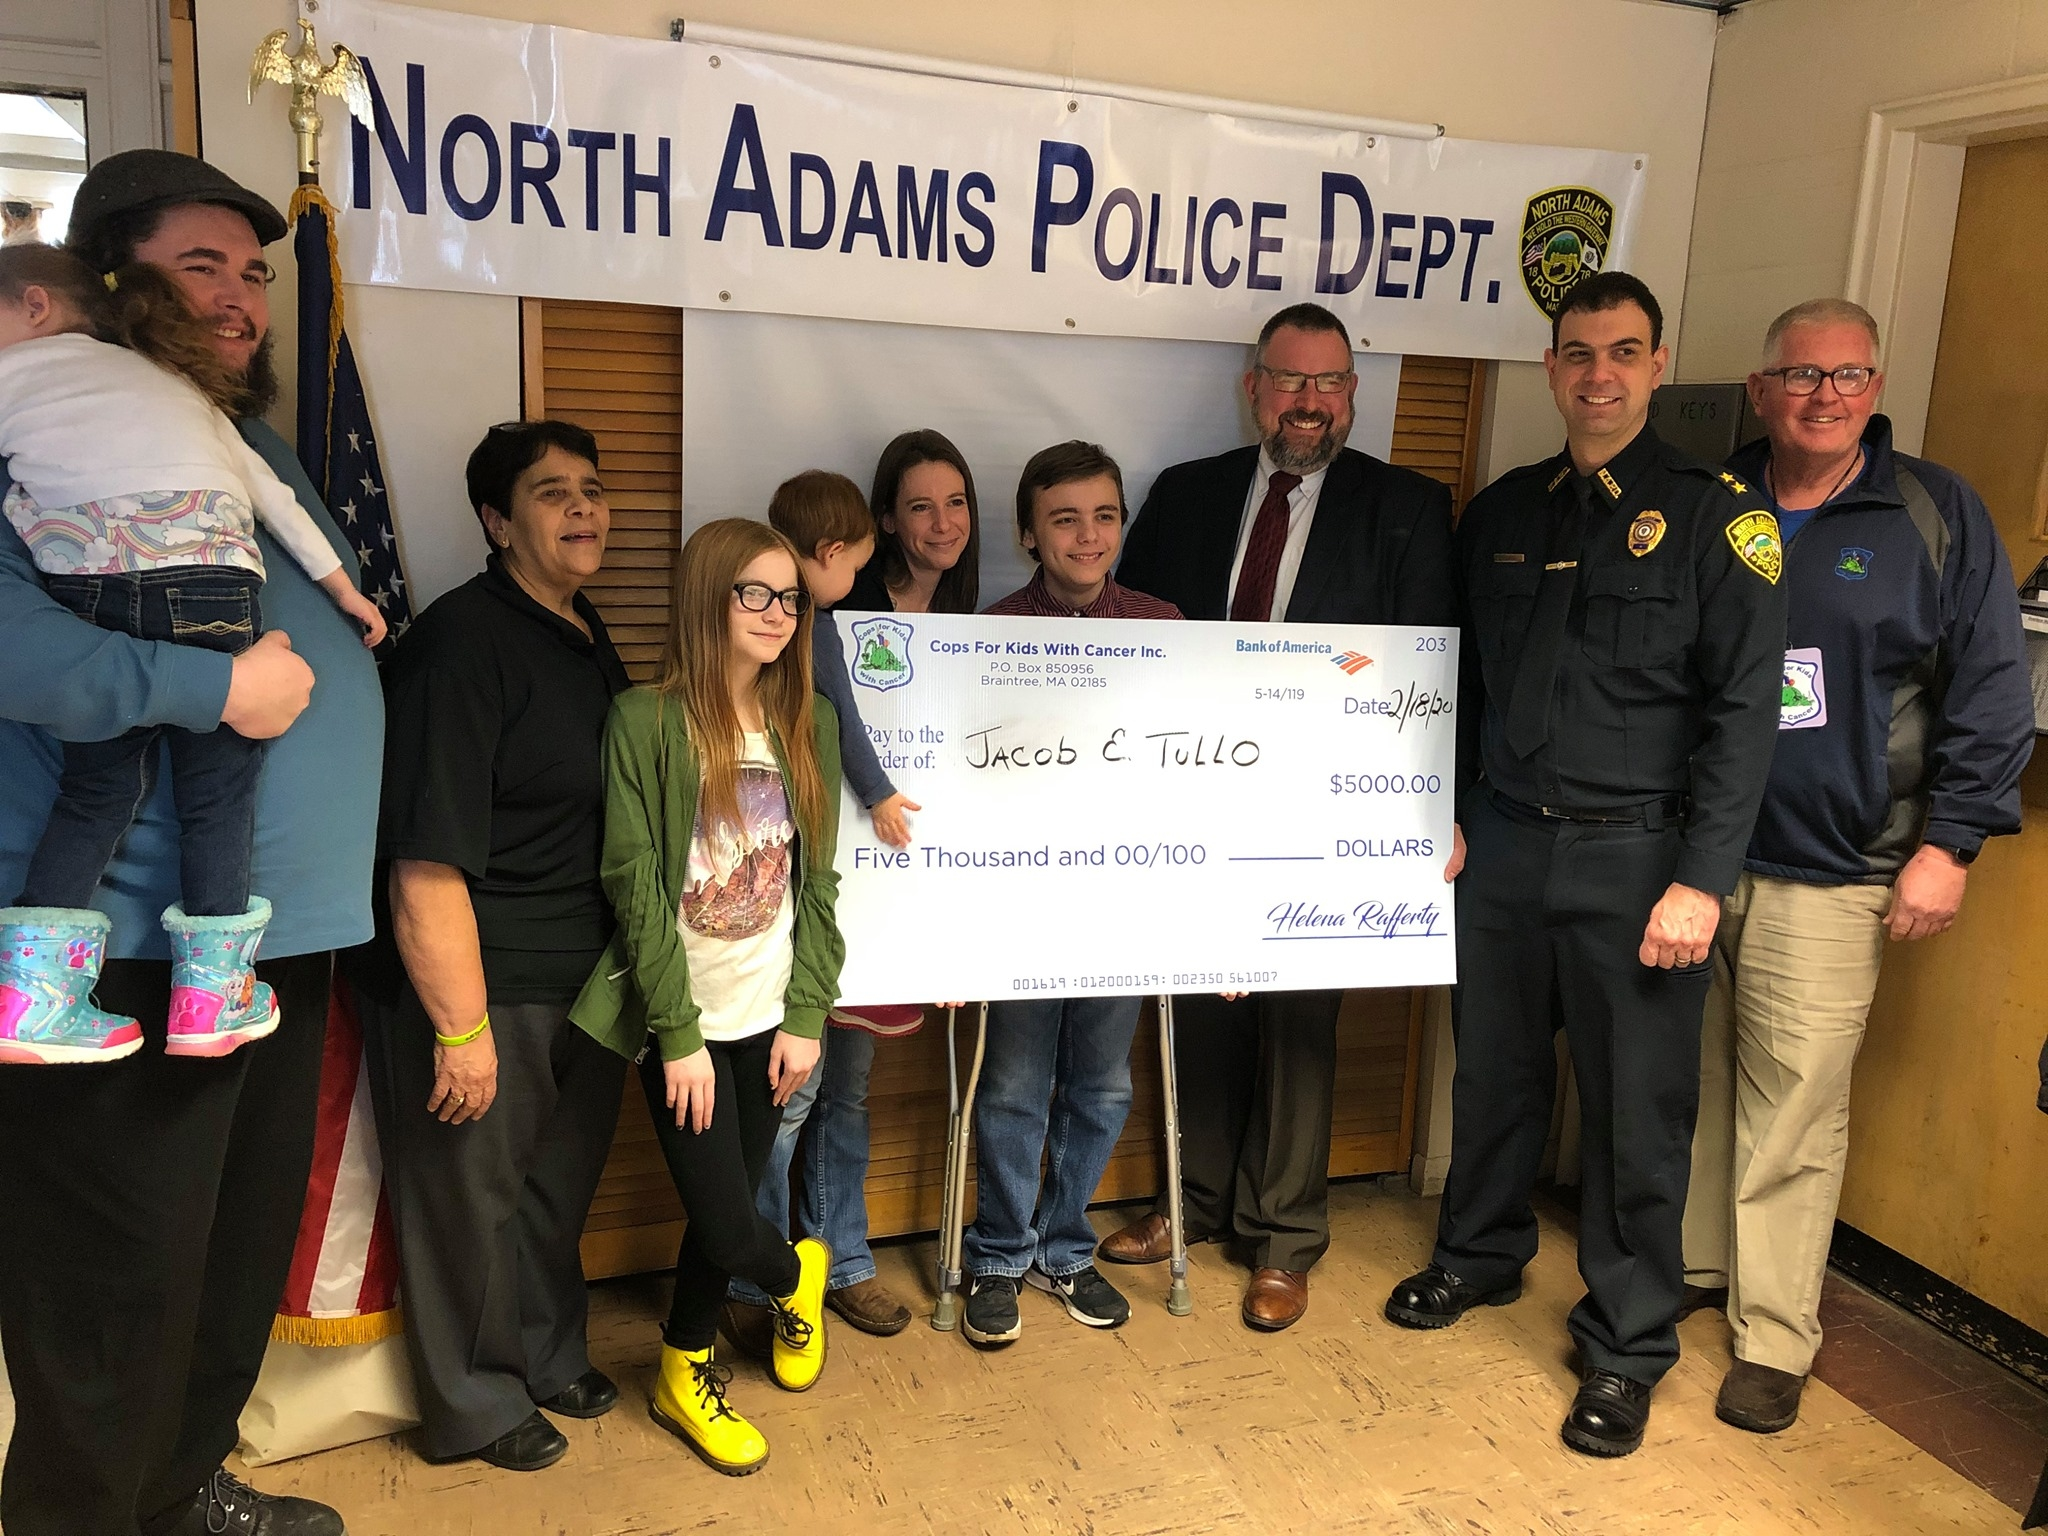 CFKWC goes to the North Adams Police Dept. and made a donation to 15 year old Jake Tullo and his family.